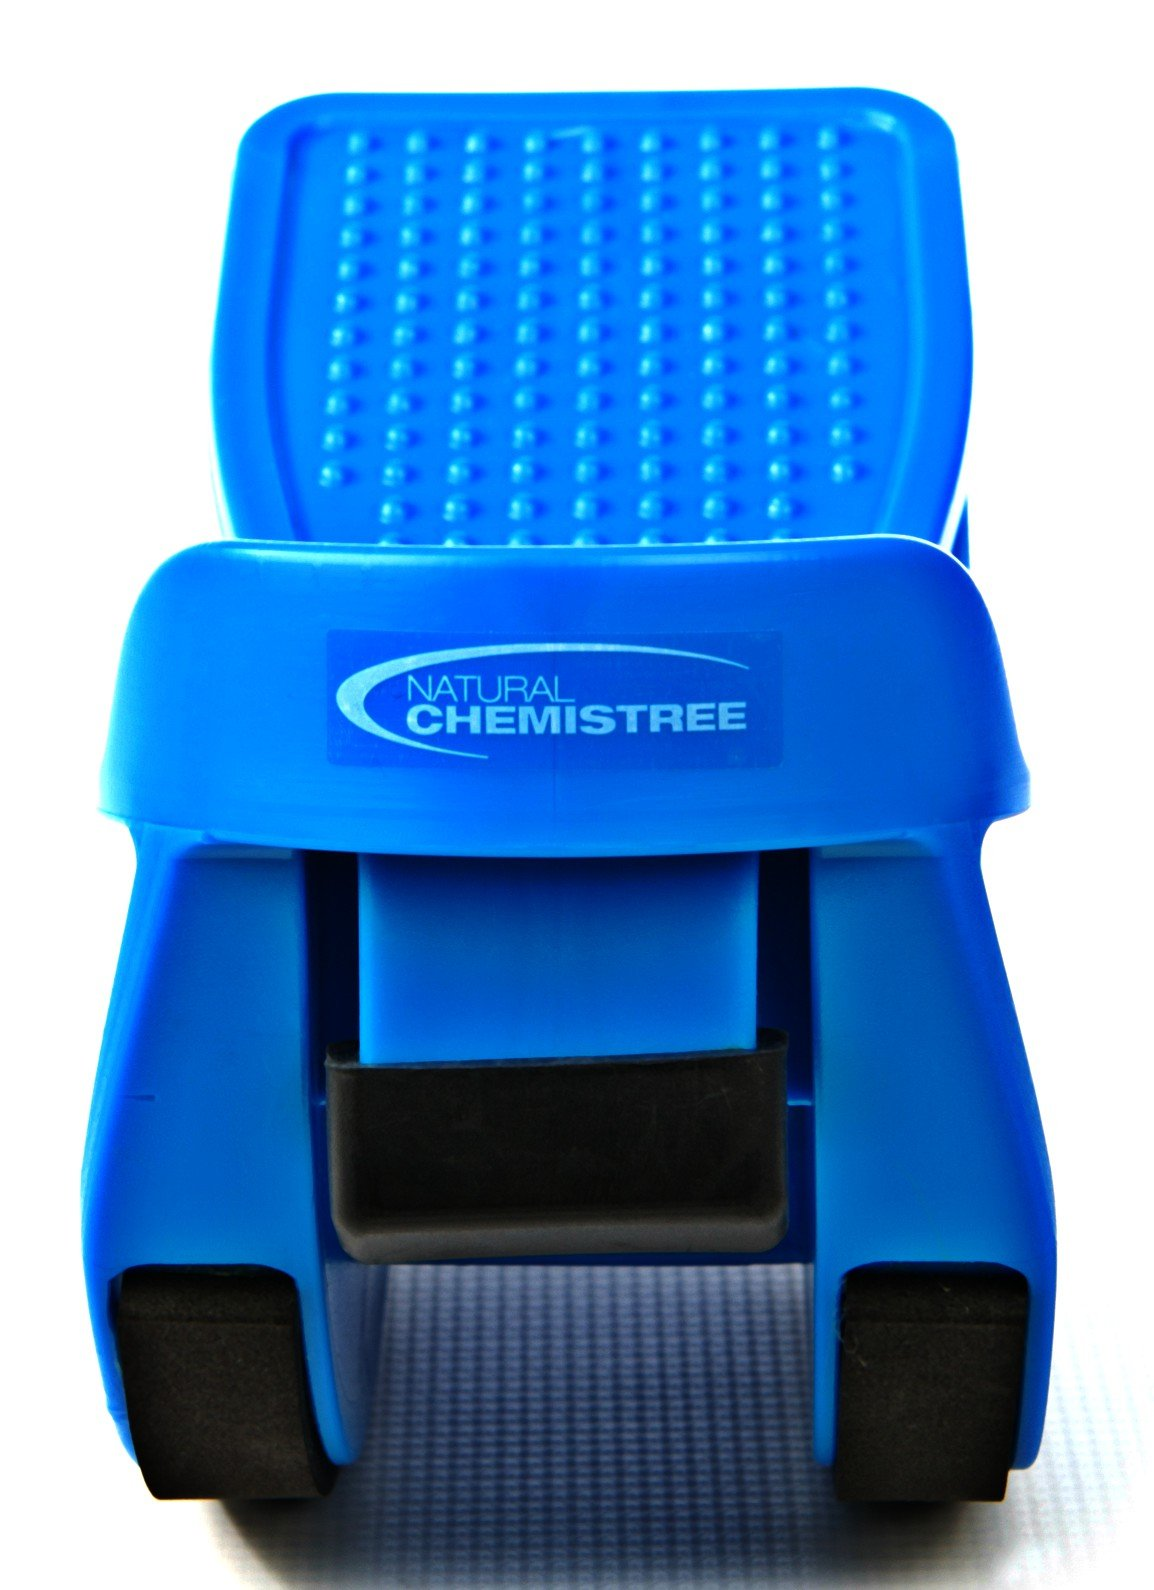 Foot Rocker. Durable Calf Stretcher Device for Achillies Tendonitis. Improve Plantar Fasciitis, Calf Flexibility, Ankle Mobility. Feet and Shin Splint Relief. Great for Physical Therapy, Athletes, Phy by Natural Chemistree (Image #3)